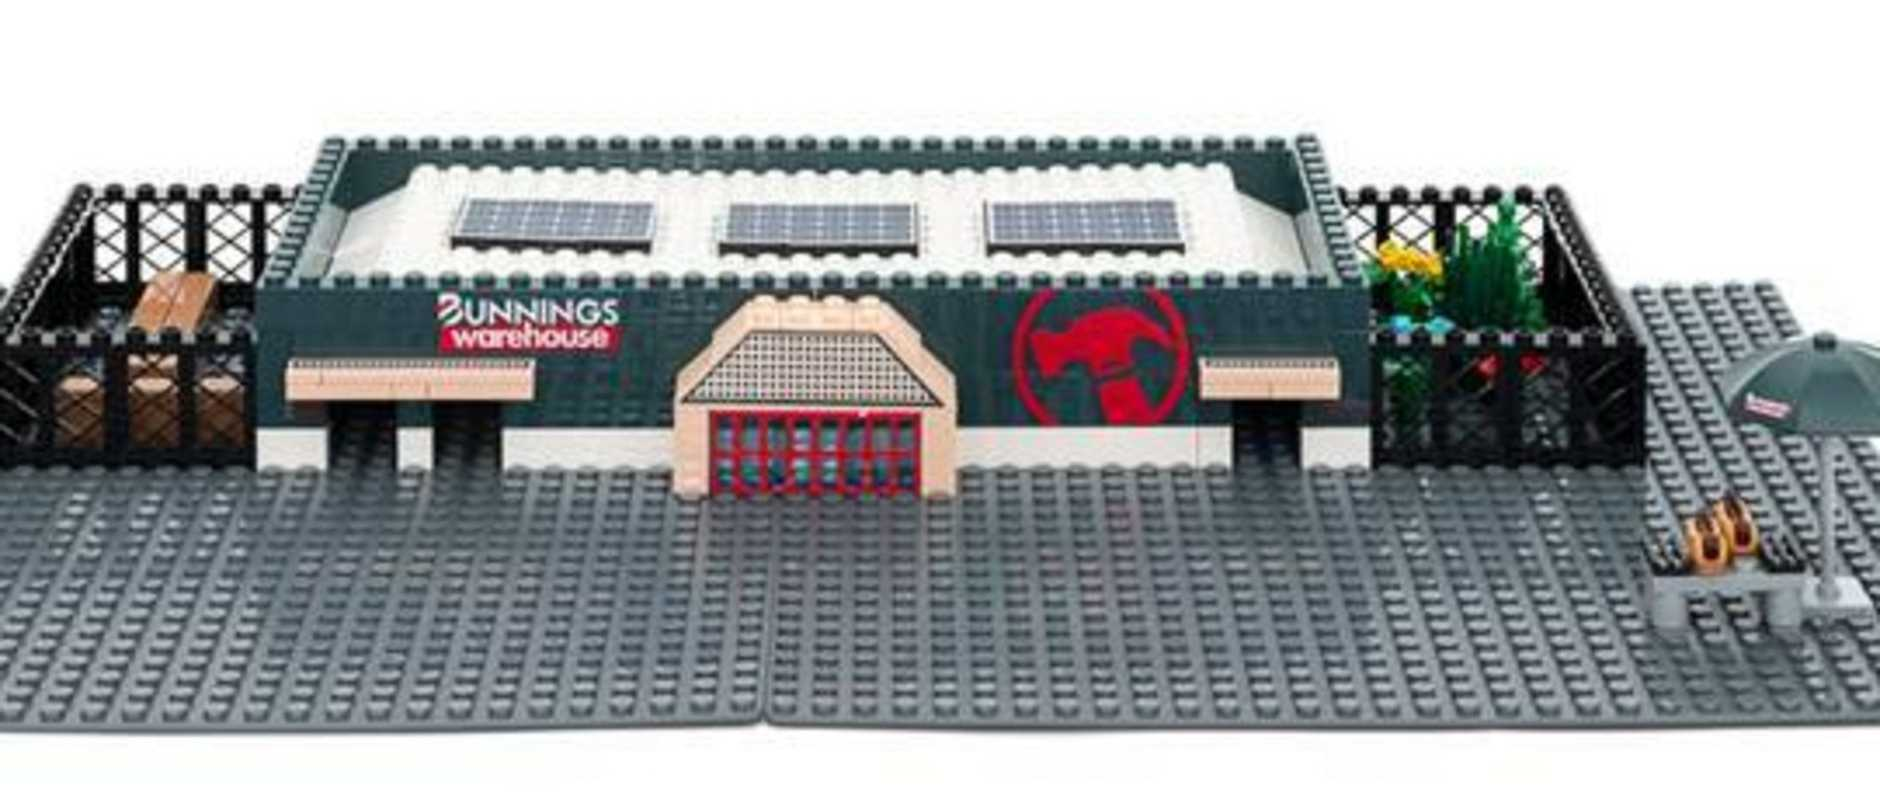 Look what's back – the Bunnings Block Warehouse set. The $30 Lego kit also features a plant-filled nursery, timber yard and everyone's favourite sausage sizzle stand.